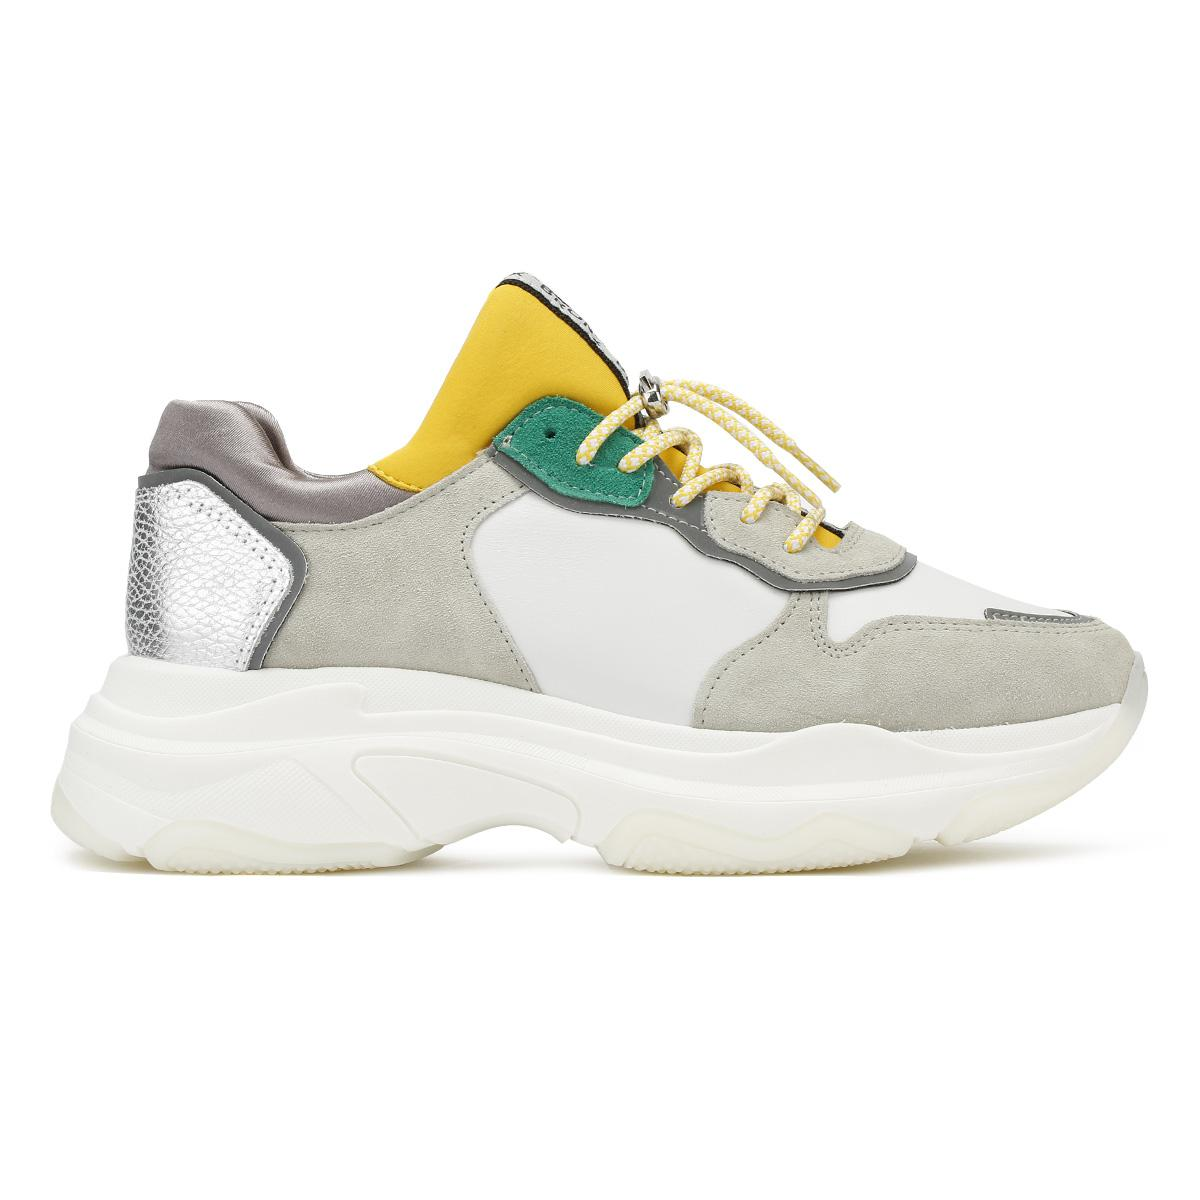 BronxTrainers - offwhite/turquoise/yellow Q4SF1i